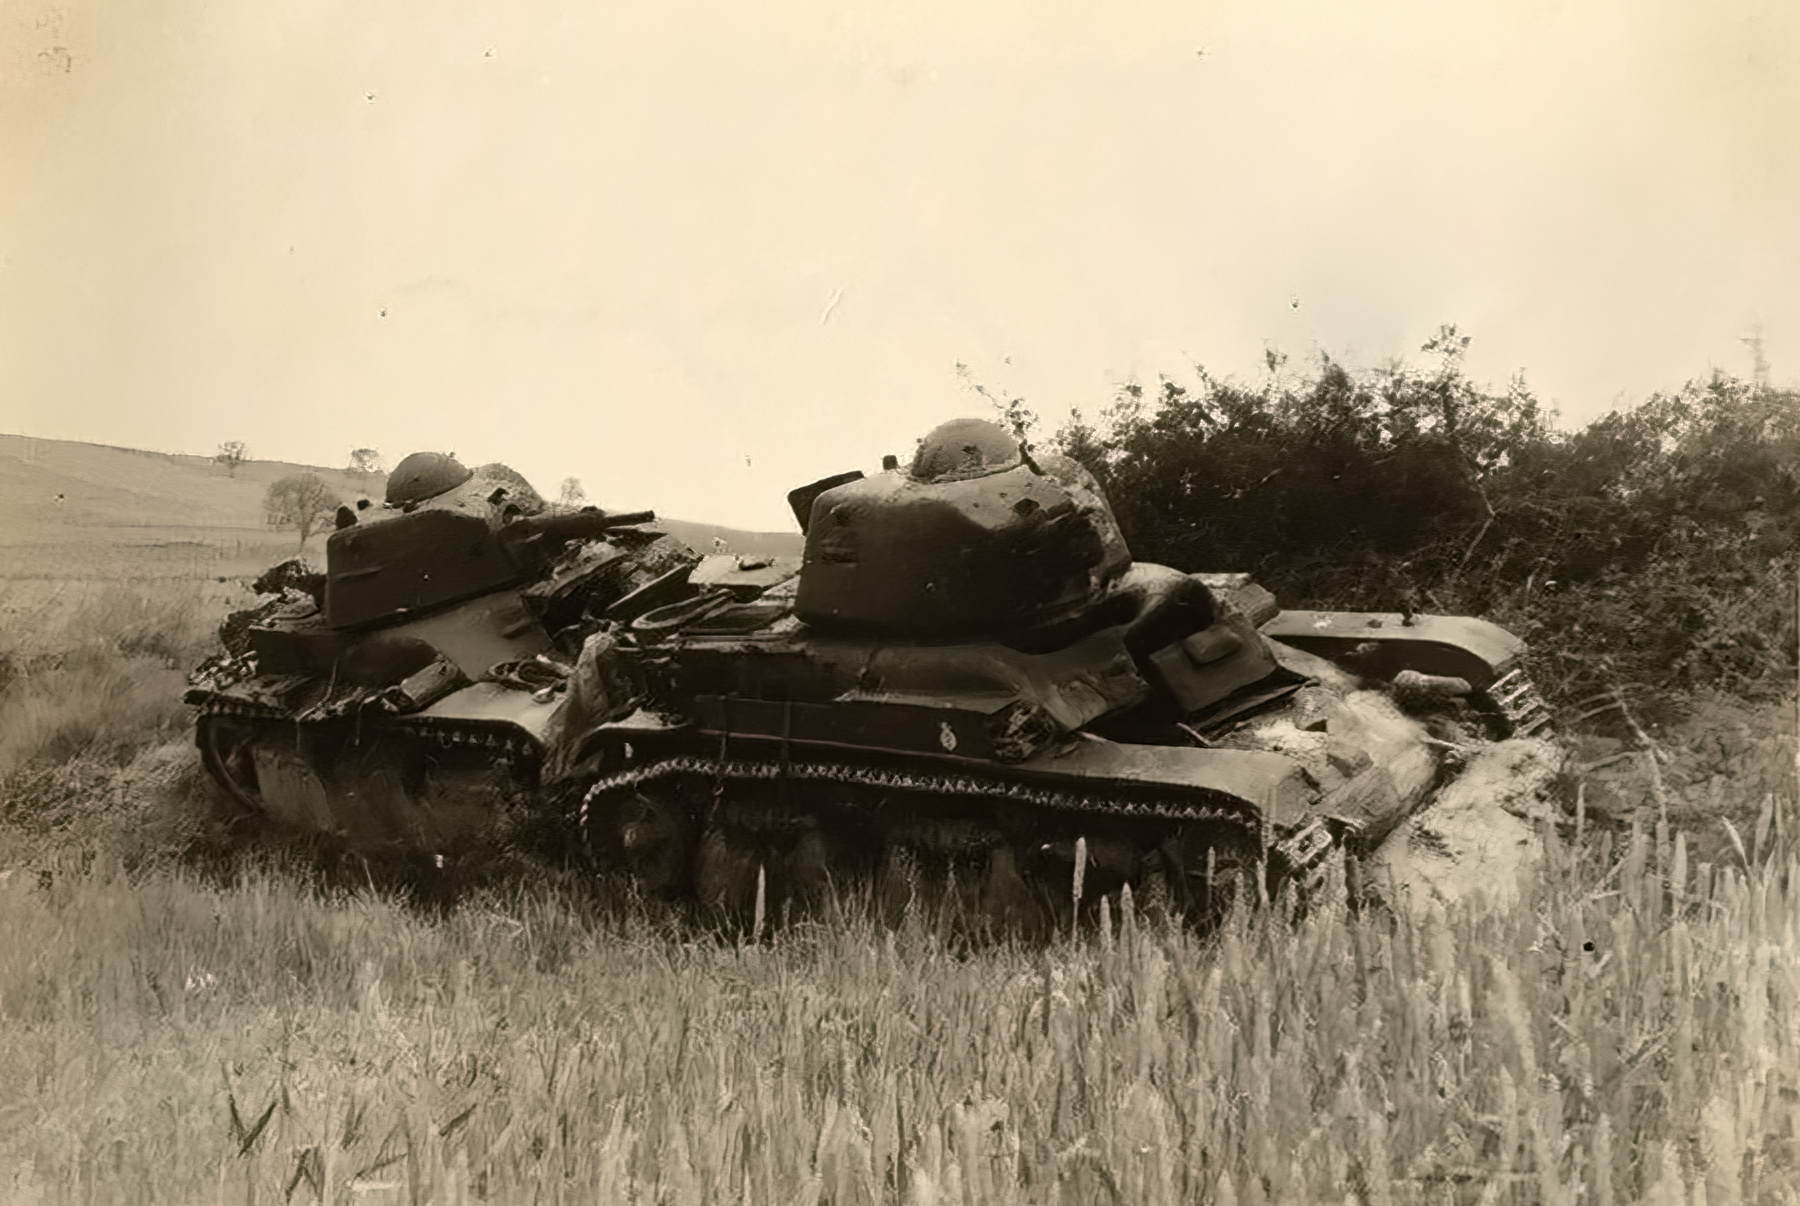 French Army Somua S35 and Renault R35 abandoned Omers France 1940 ebay 01